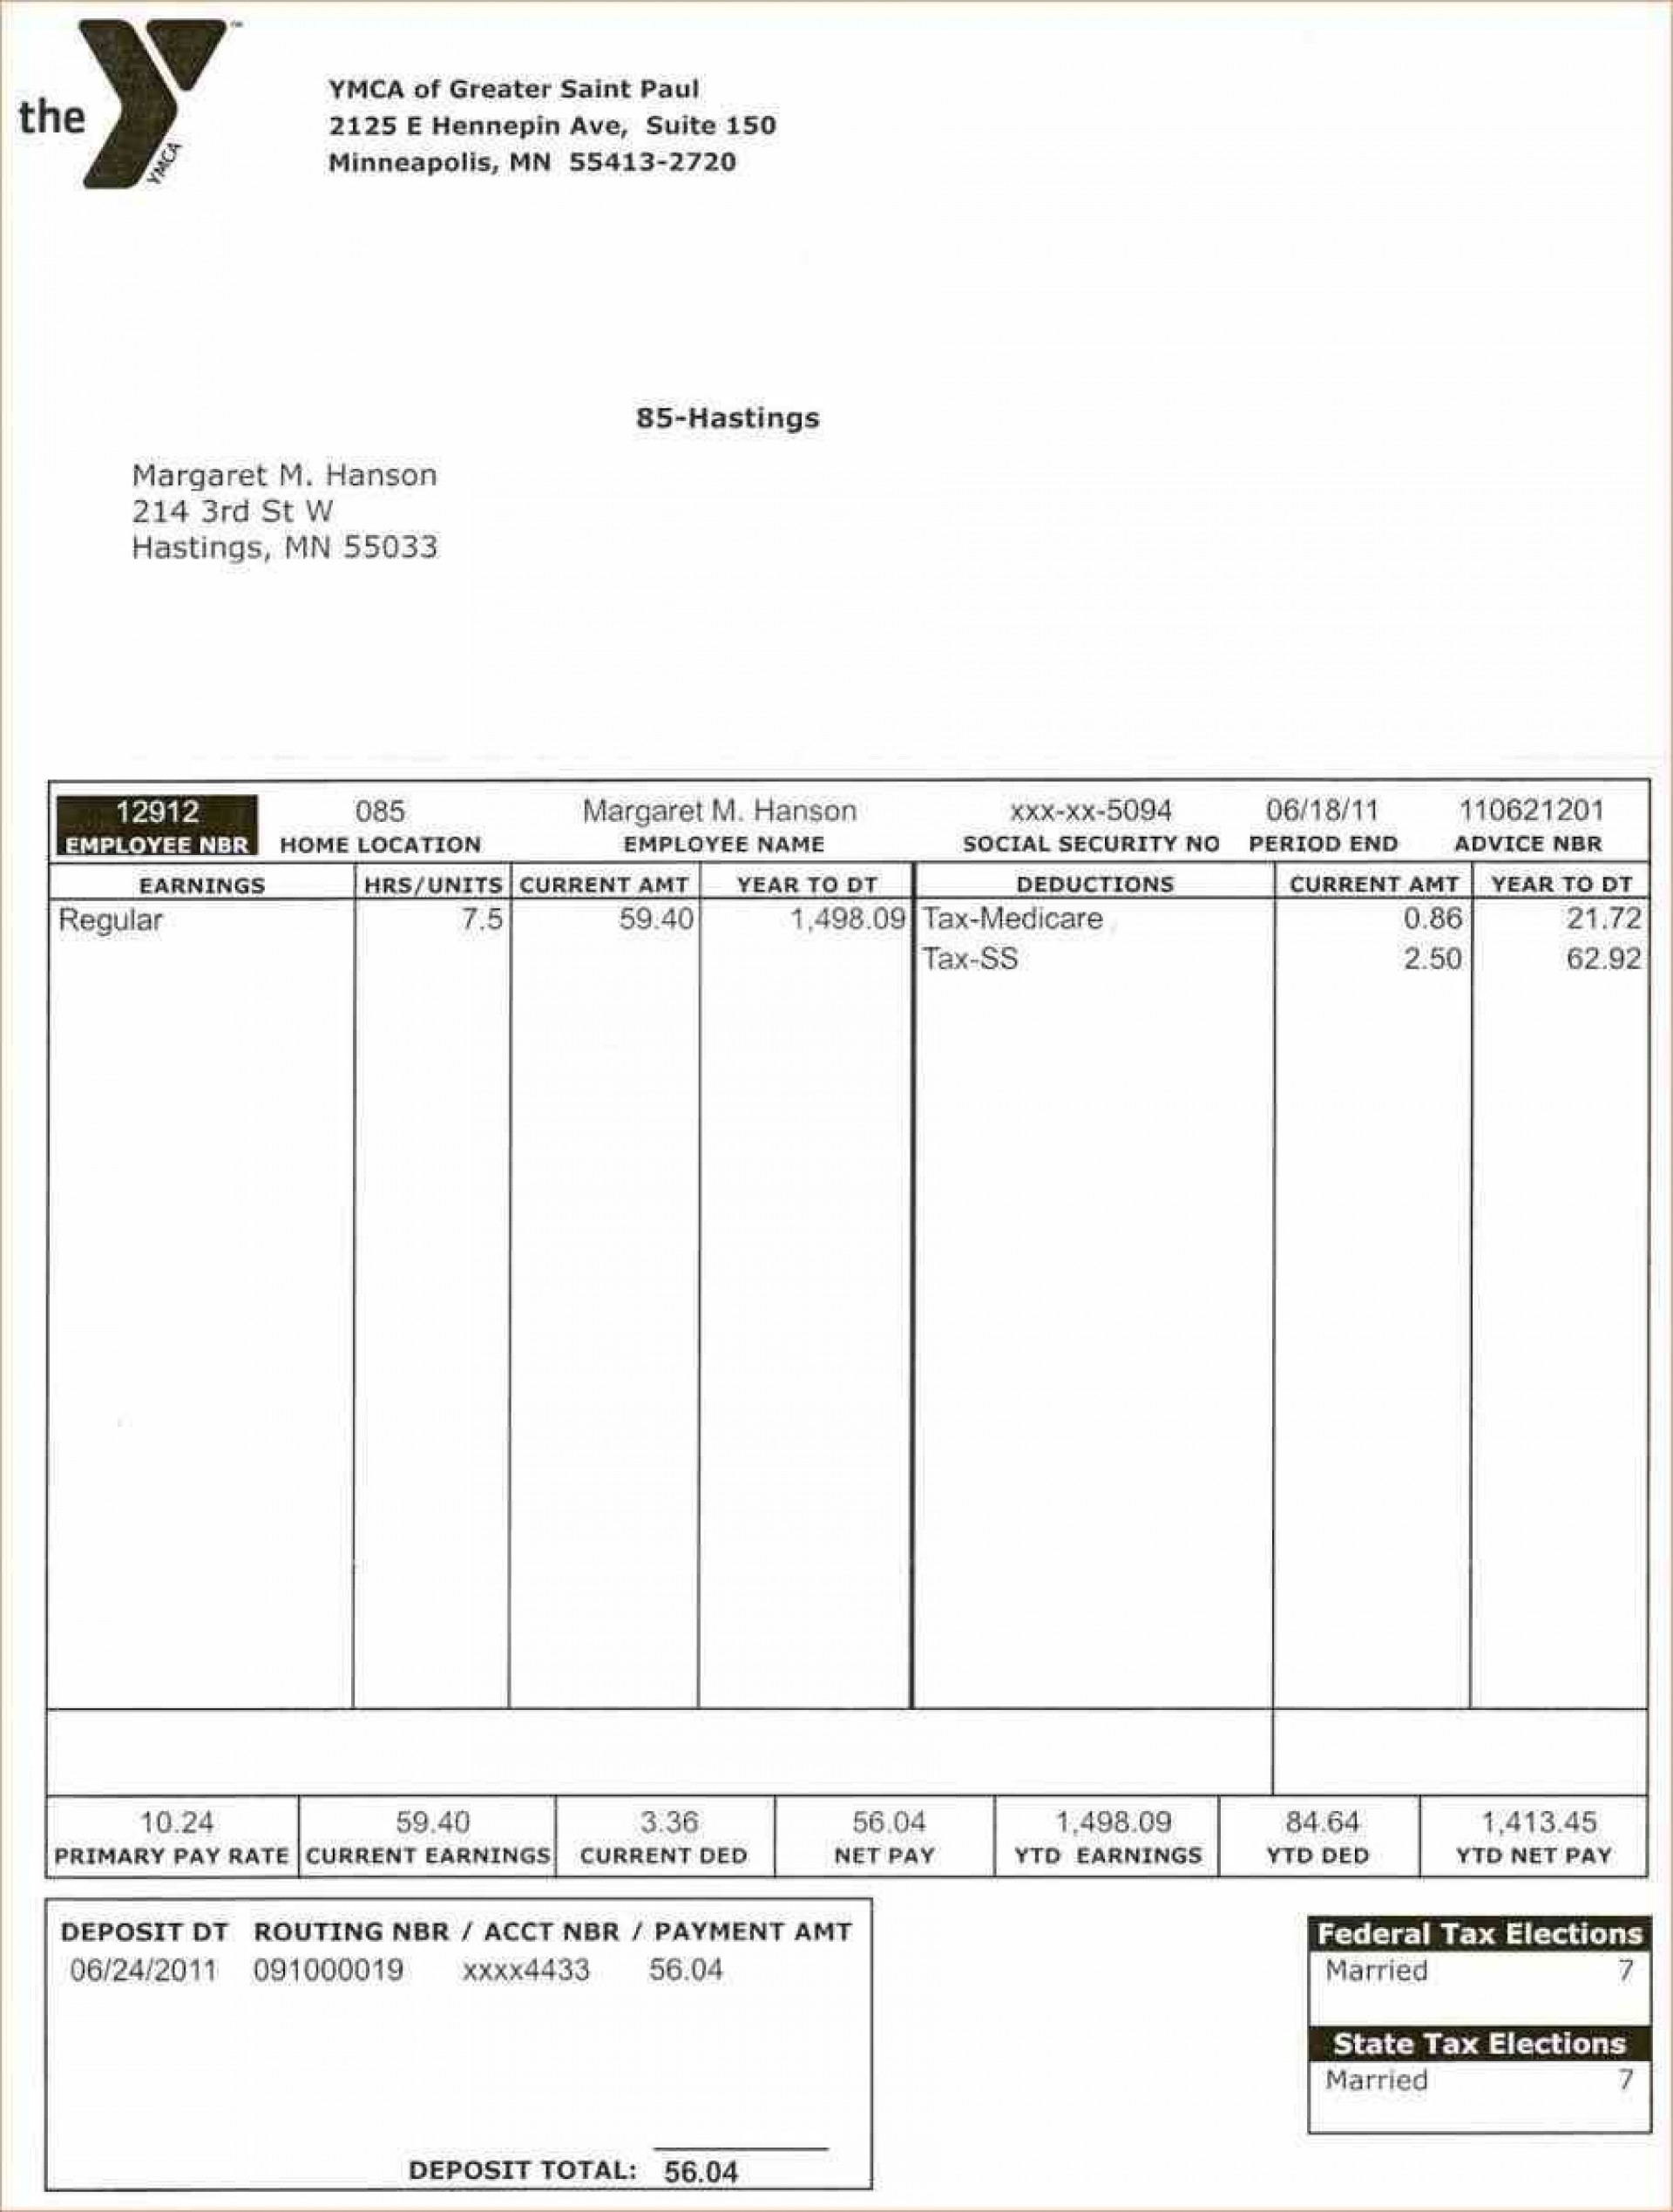 005 Top Pay Stub Template Word Image  Document Check Microsoft Free1920